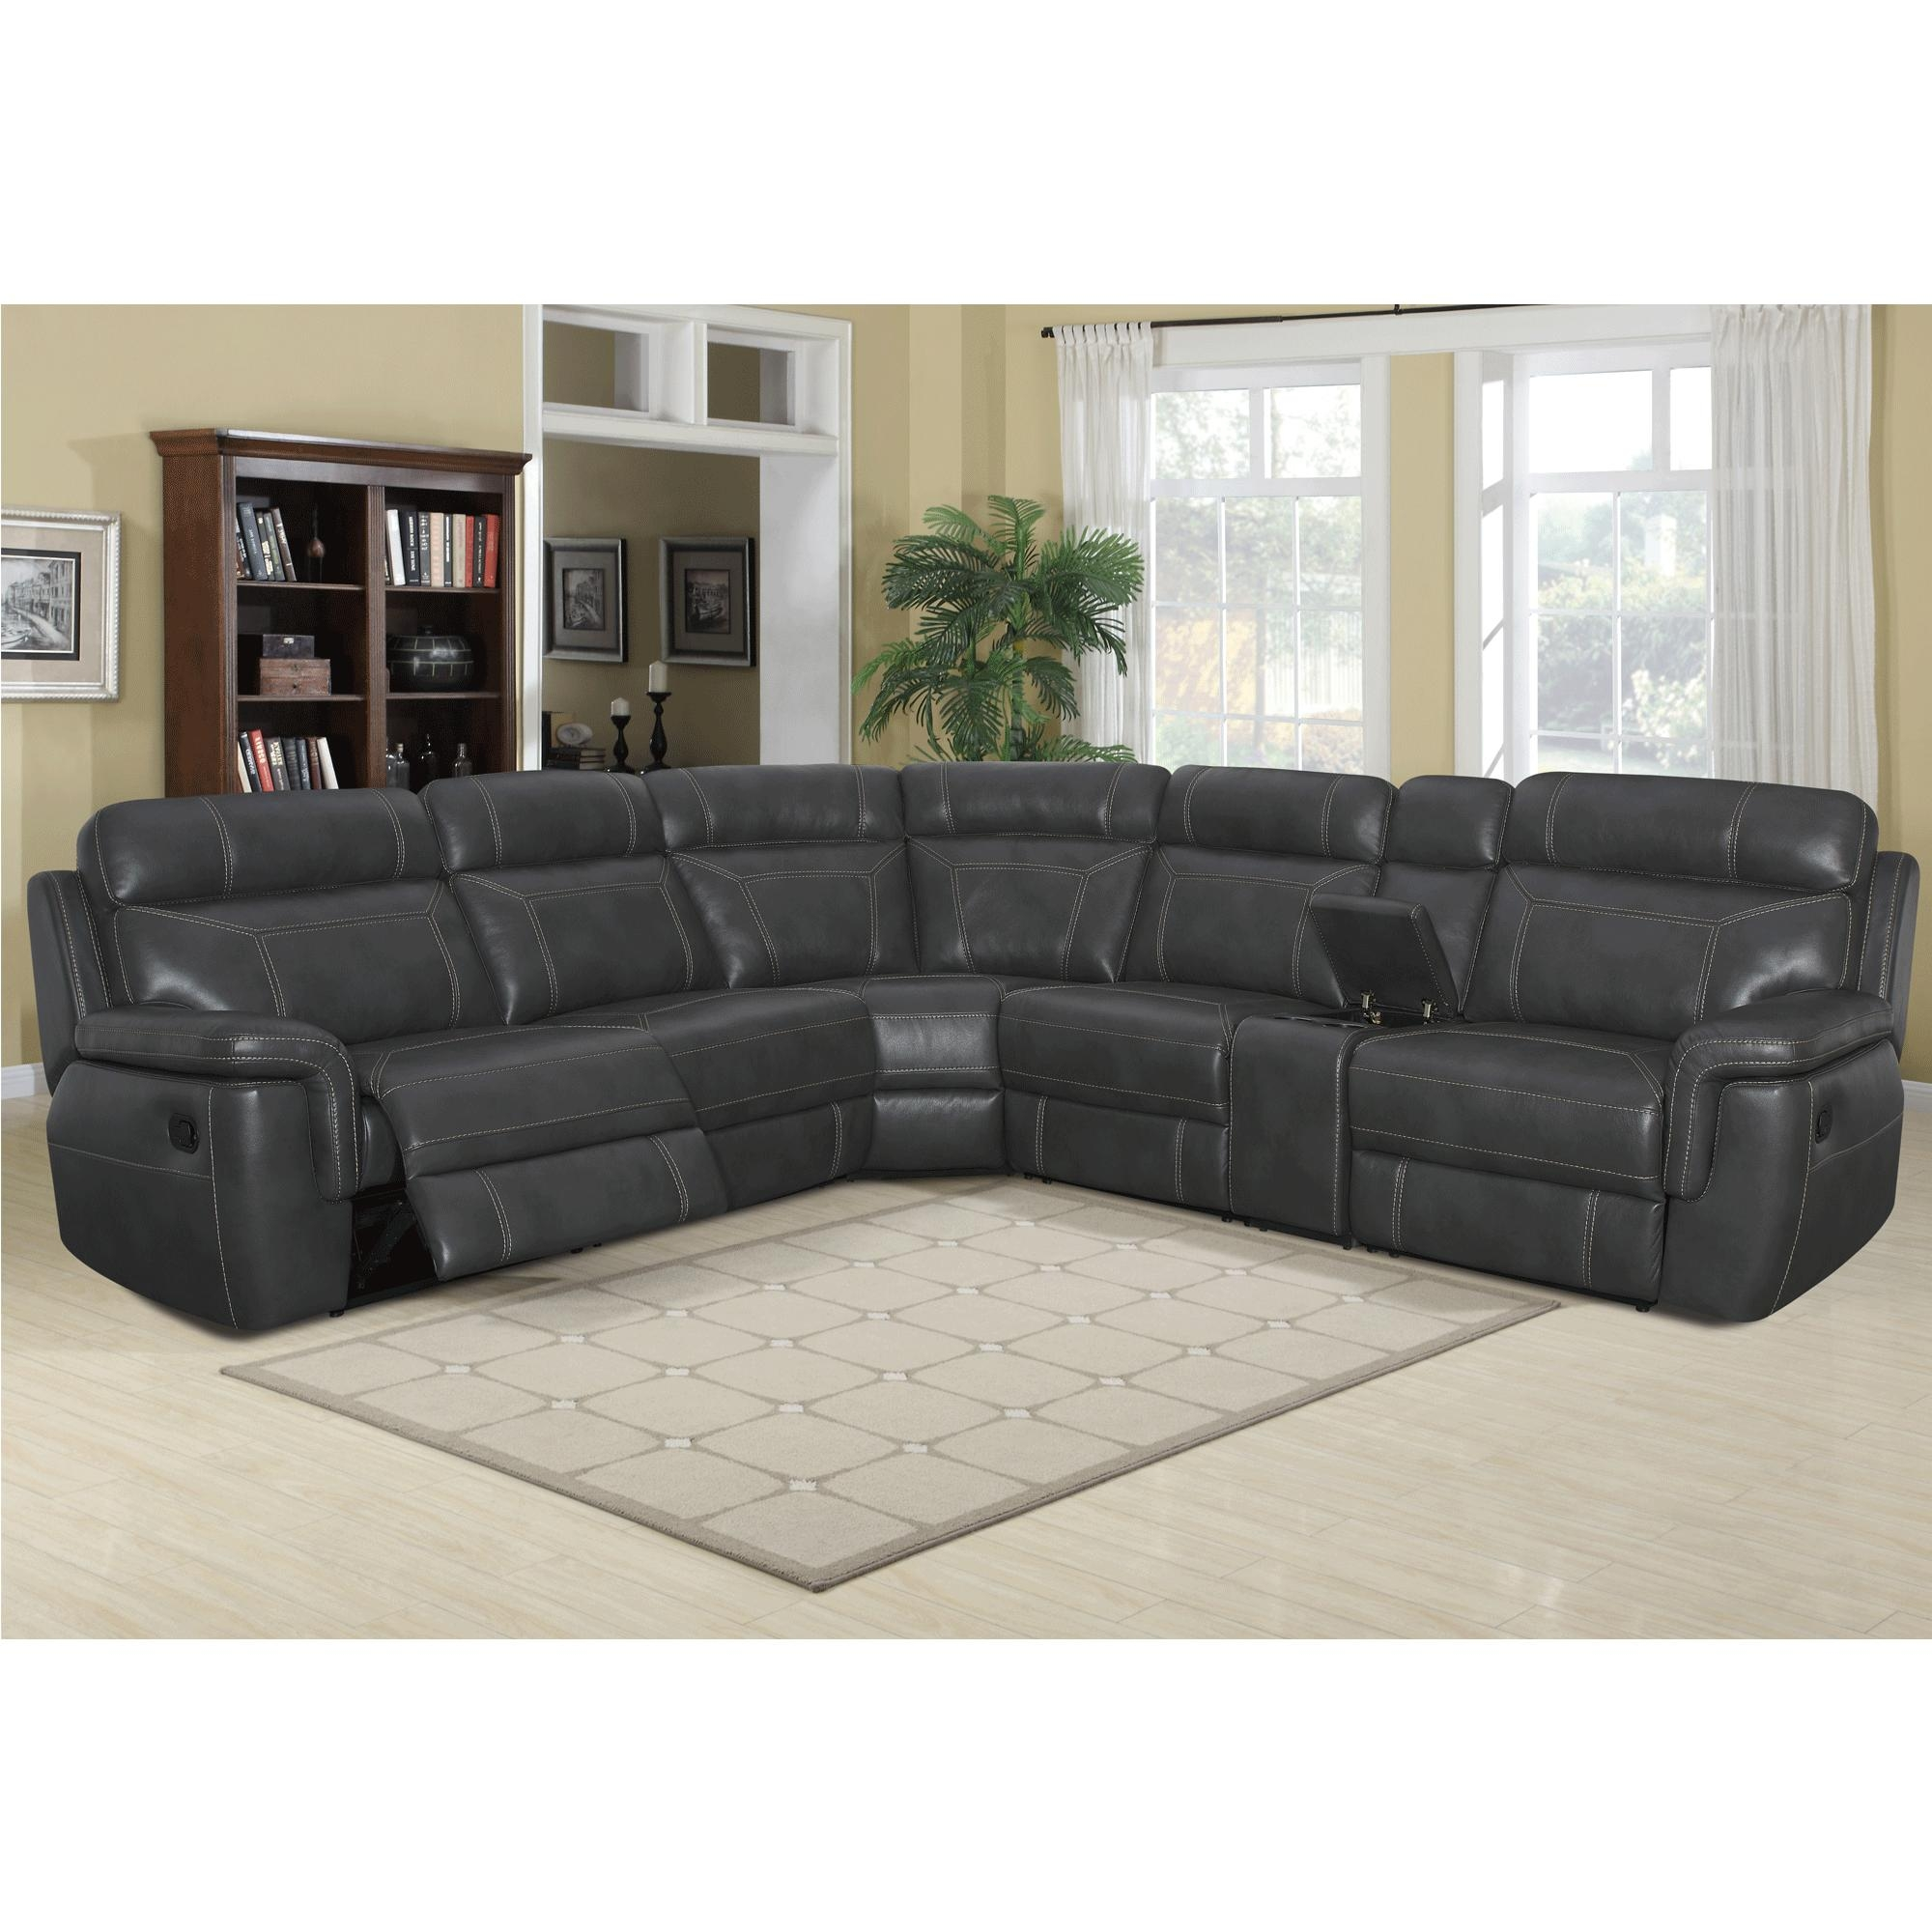 Furniture: Interesting Microfiber Sectional For Living Room Throughout Microfiber Suede Sectional (Image 11 of 20)